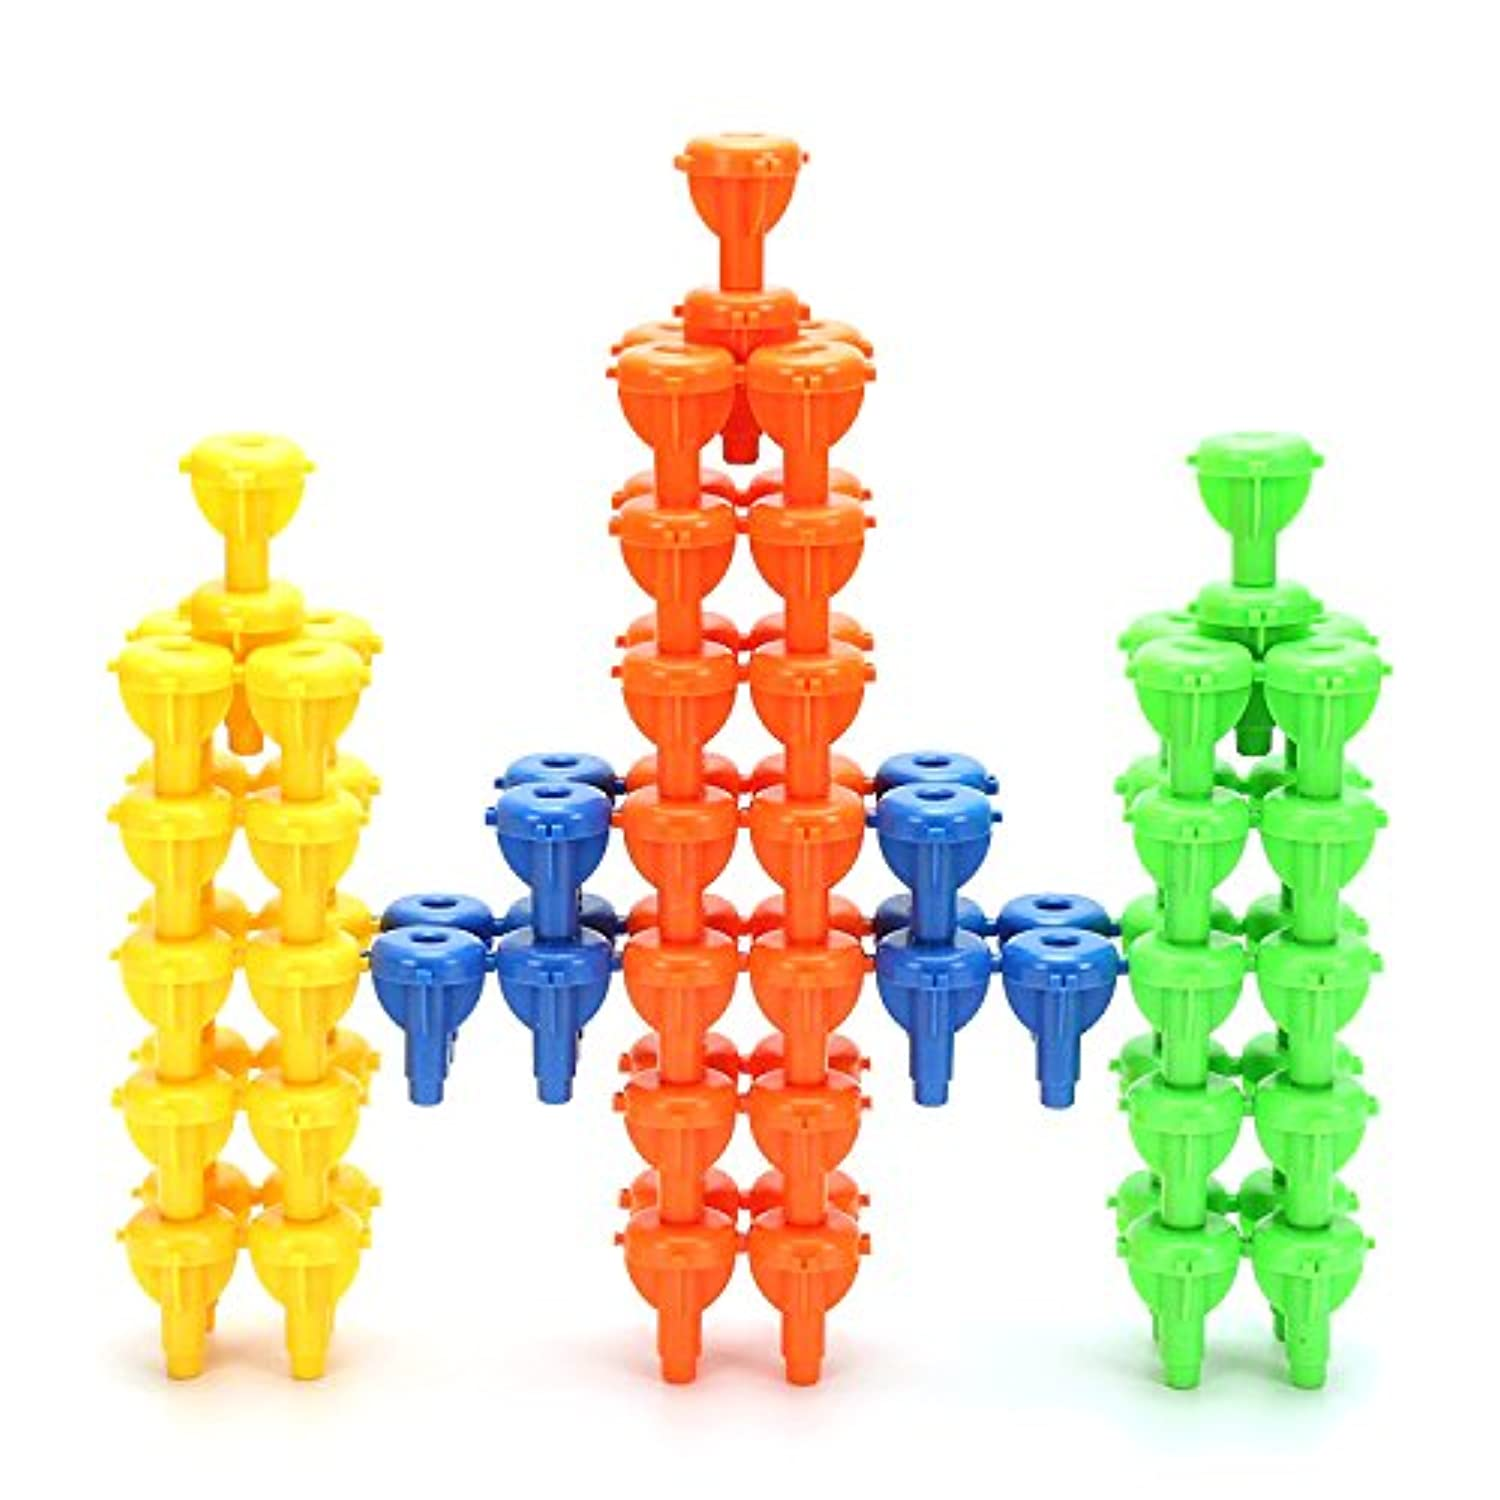 96Pcs Pegs Stacking Toy Occupational Therapy Fine Motor Building Blocks Colour Recognition Sorting Games for Kids